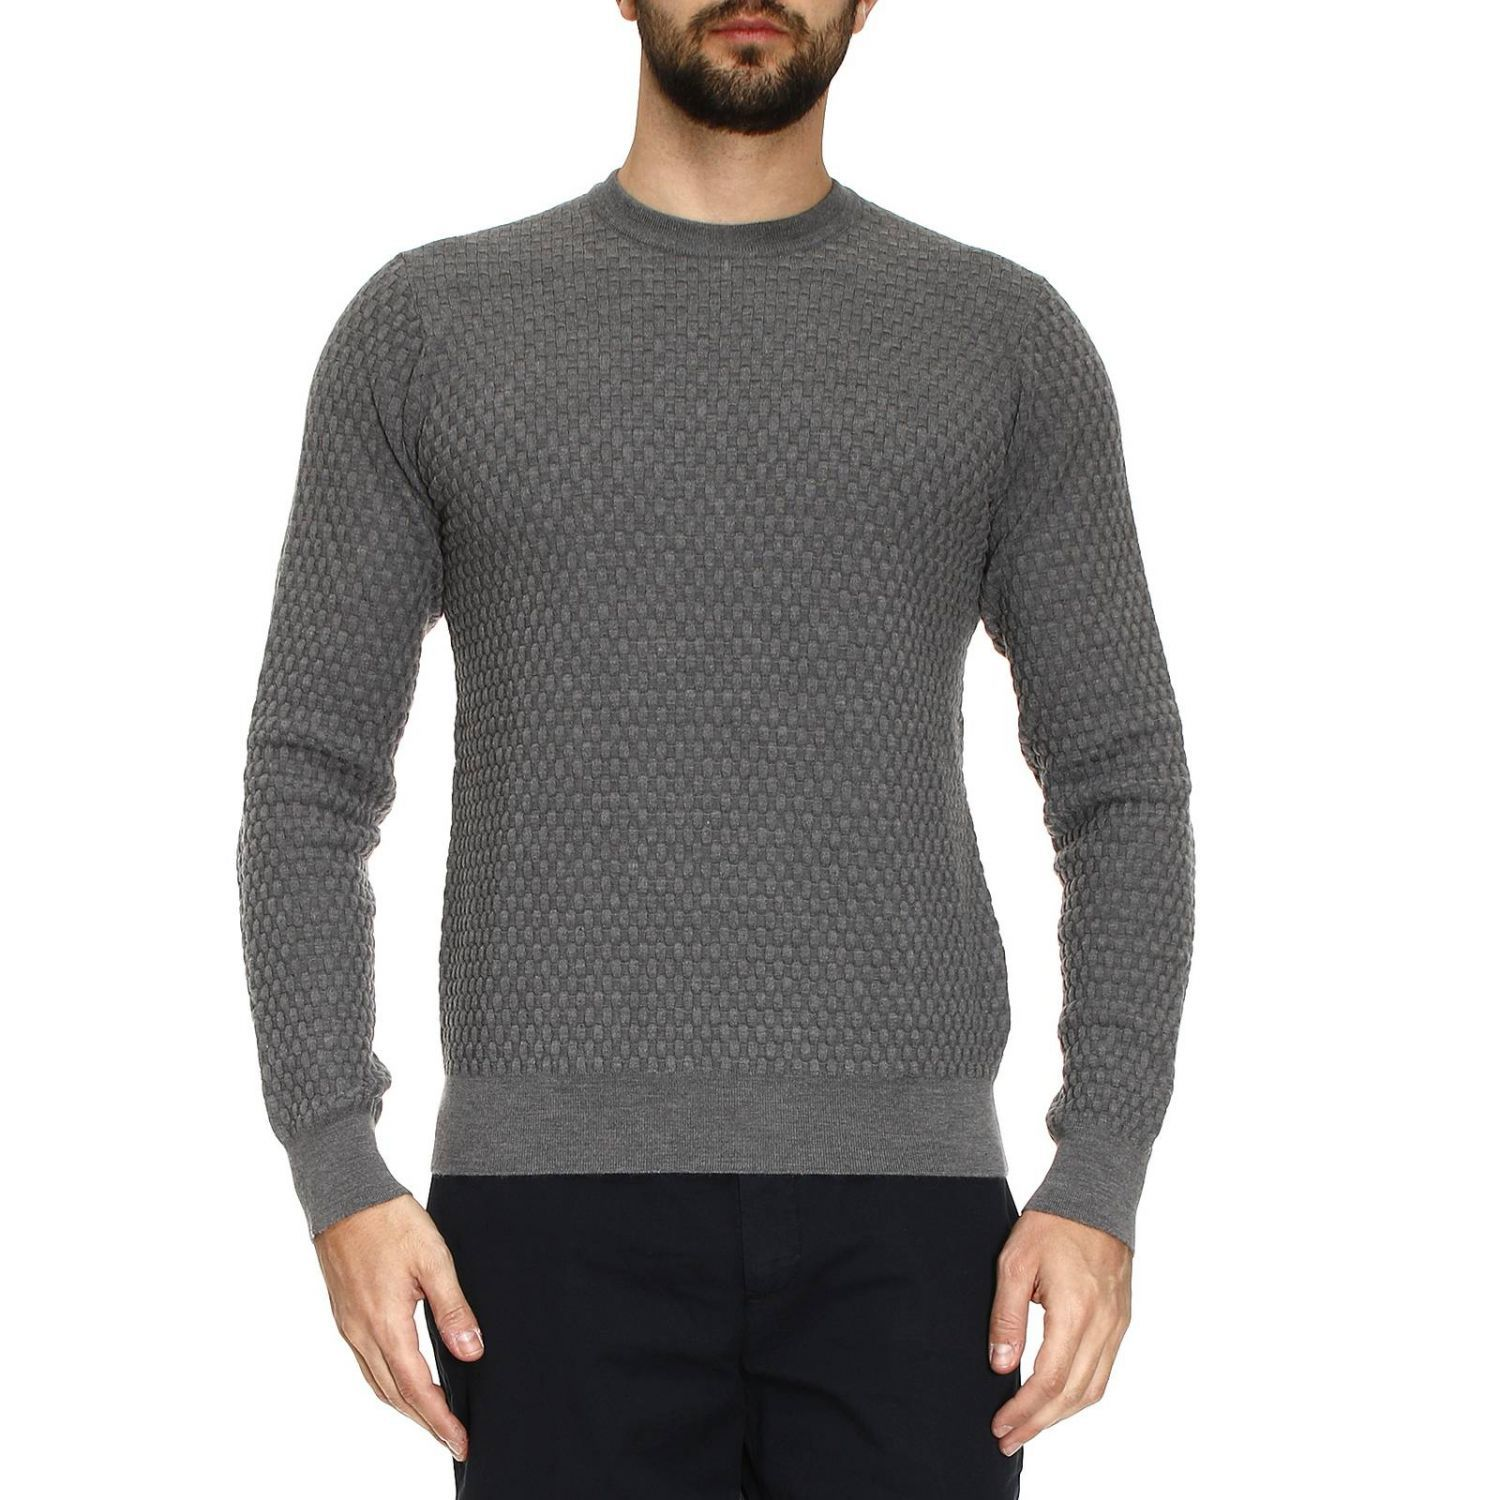 Sweater Sweater Men Tods